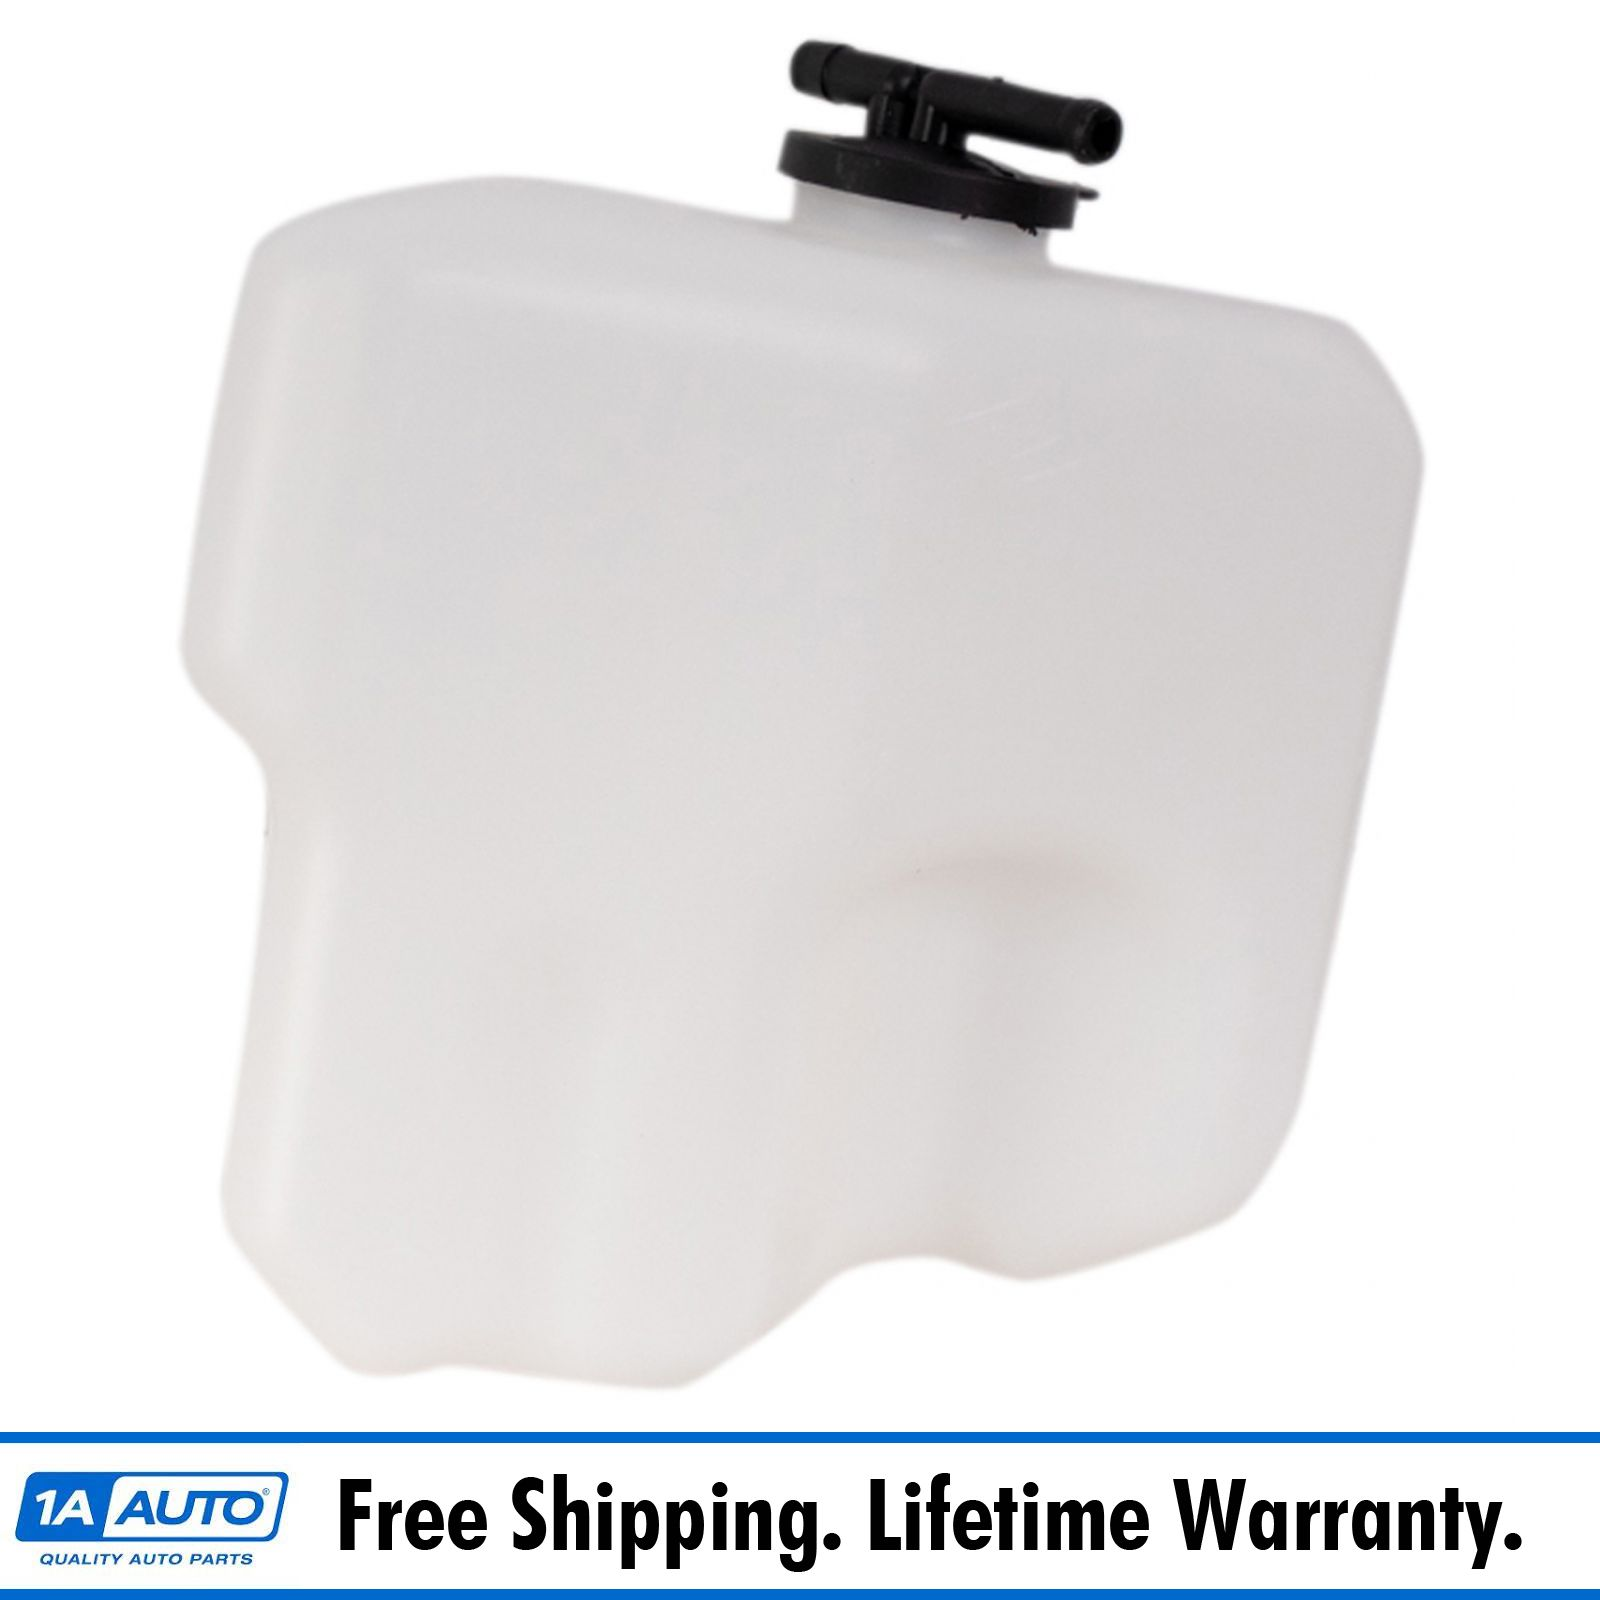 Radiator Coolant Overflow Expansion Tank Bottle for 97-01 Toyota Camry ES300